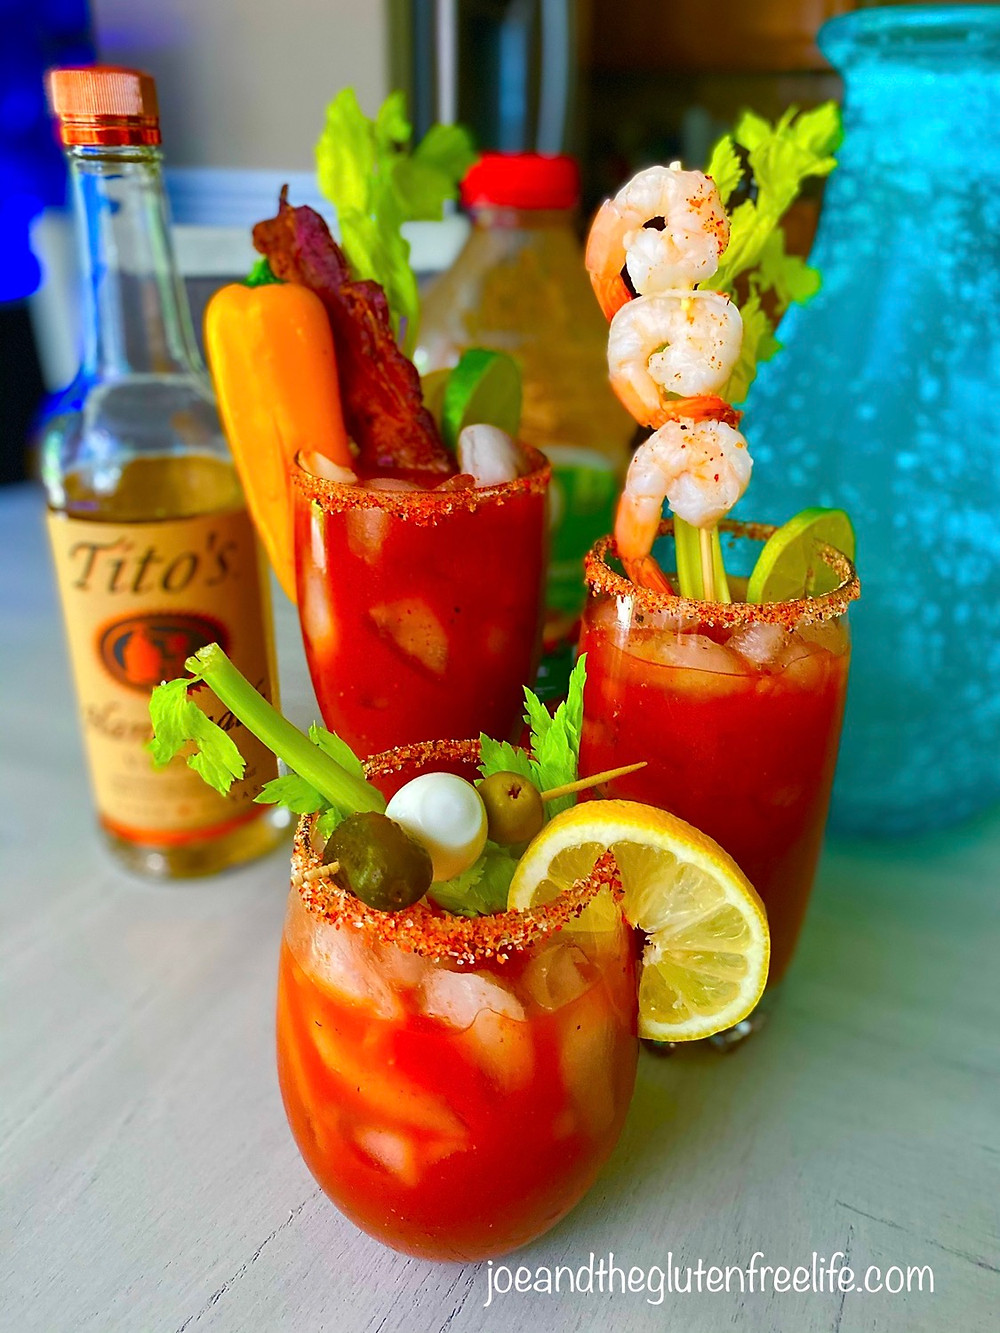 The best Bloody Mary you will ever have and 100% gluten free!